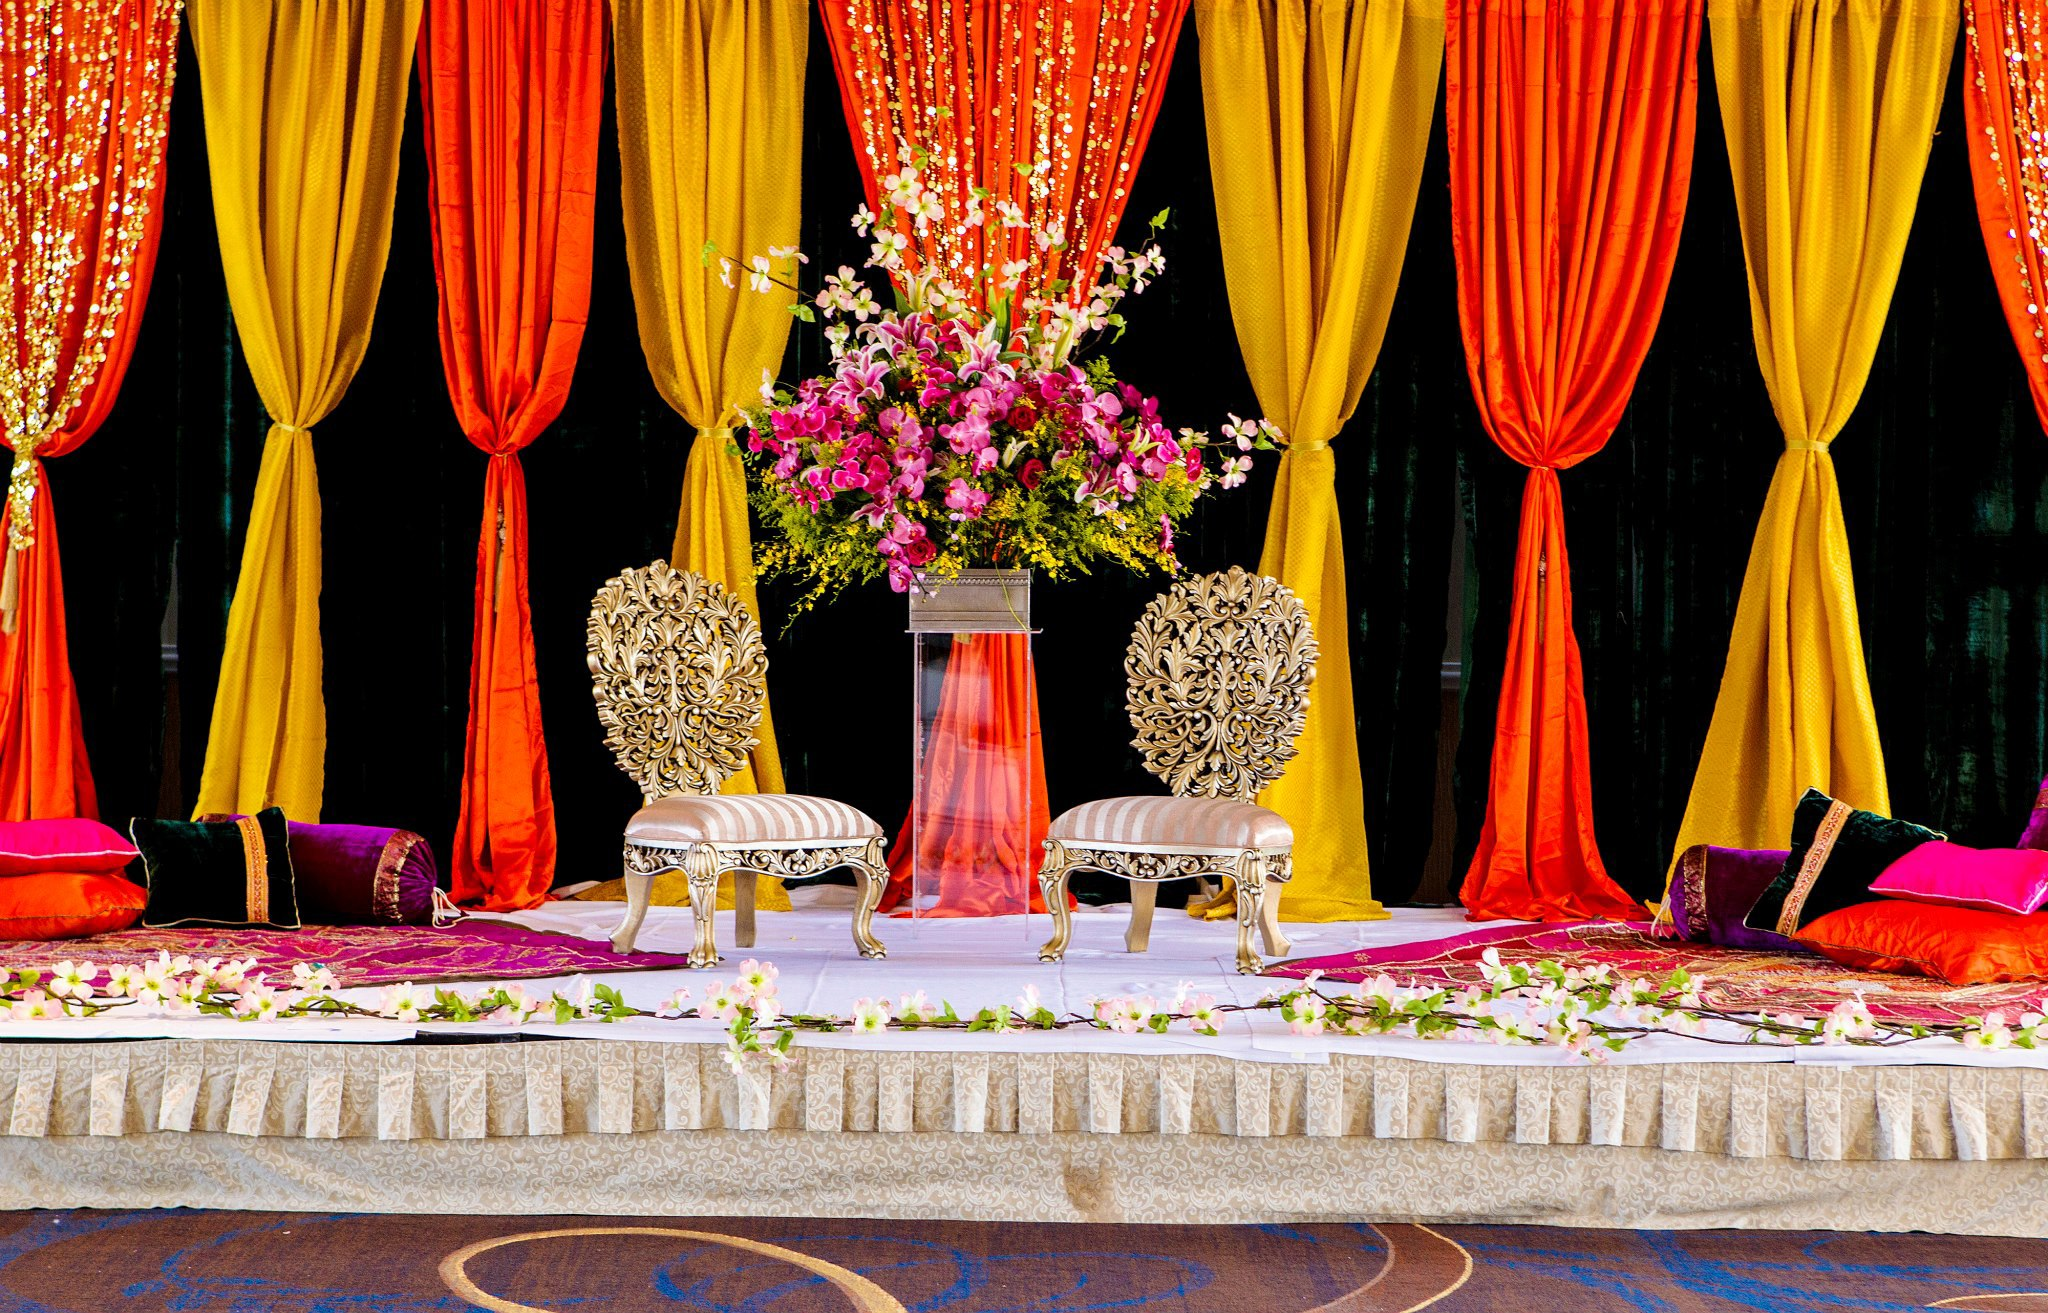 Imperial Decorations - Indian Wedding Mehndi Stage Designs Decorations Ideas.jpg